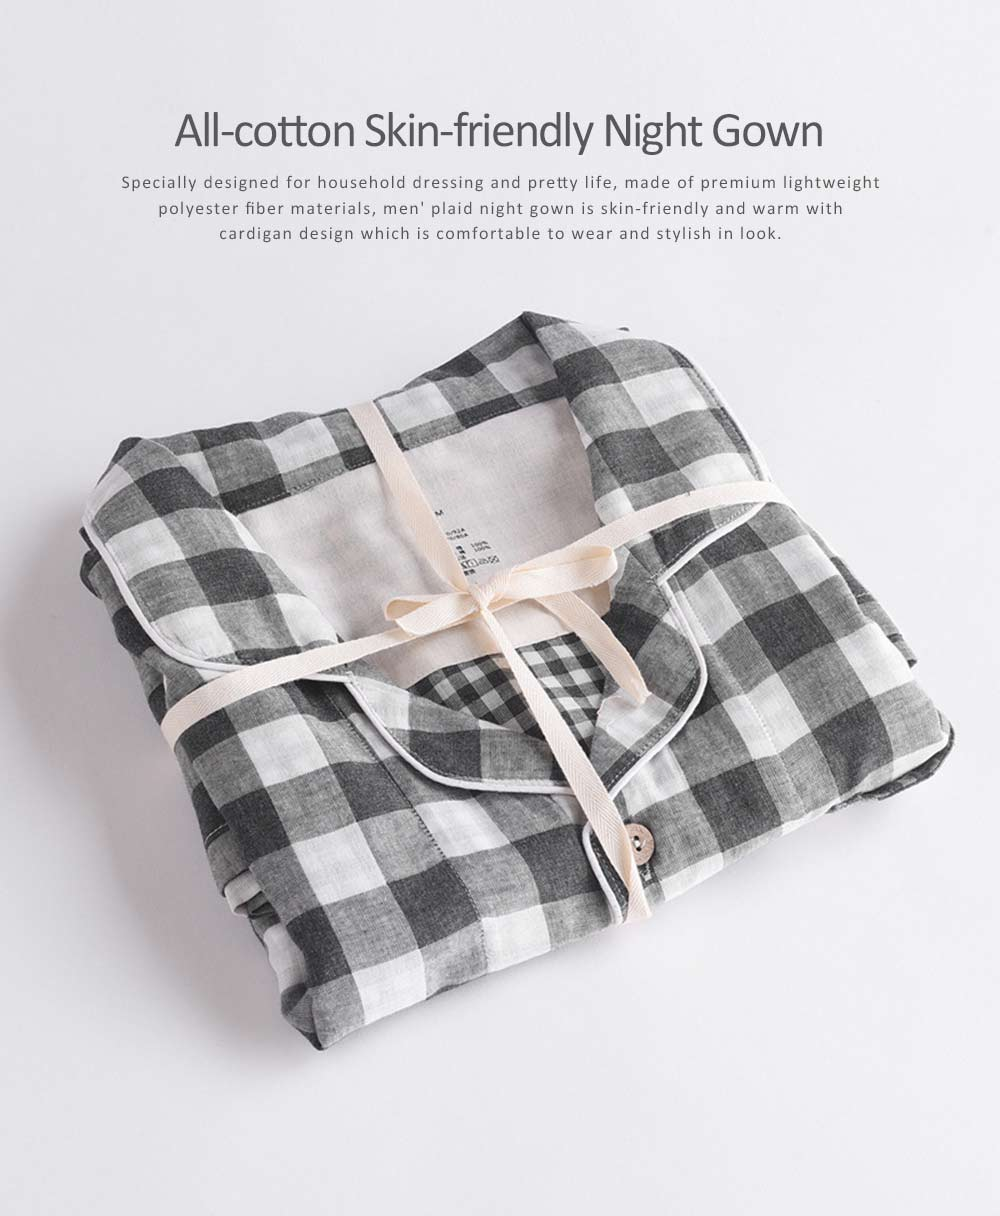 Men's Plaid Night Gown, Simple & Comfortable Long Sleeve Cardigan Pajama Suit for Household Dressing 0